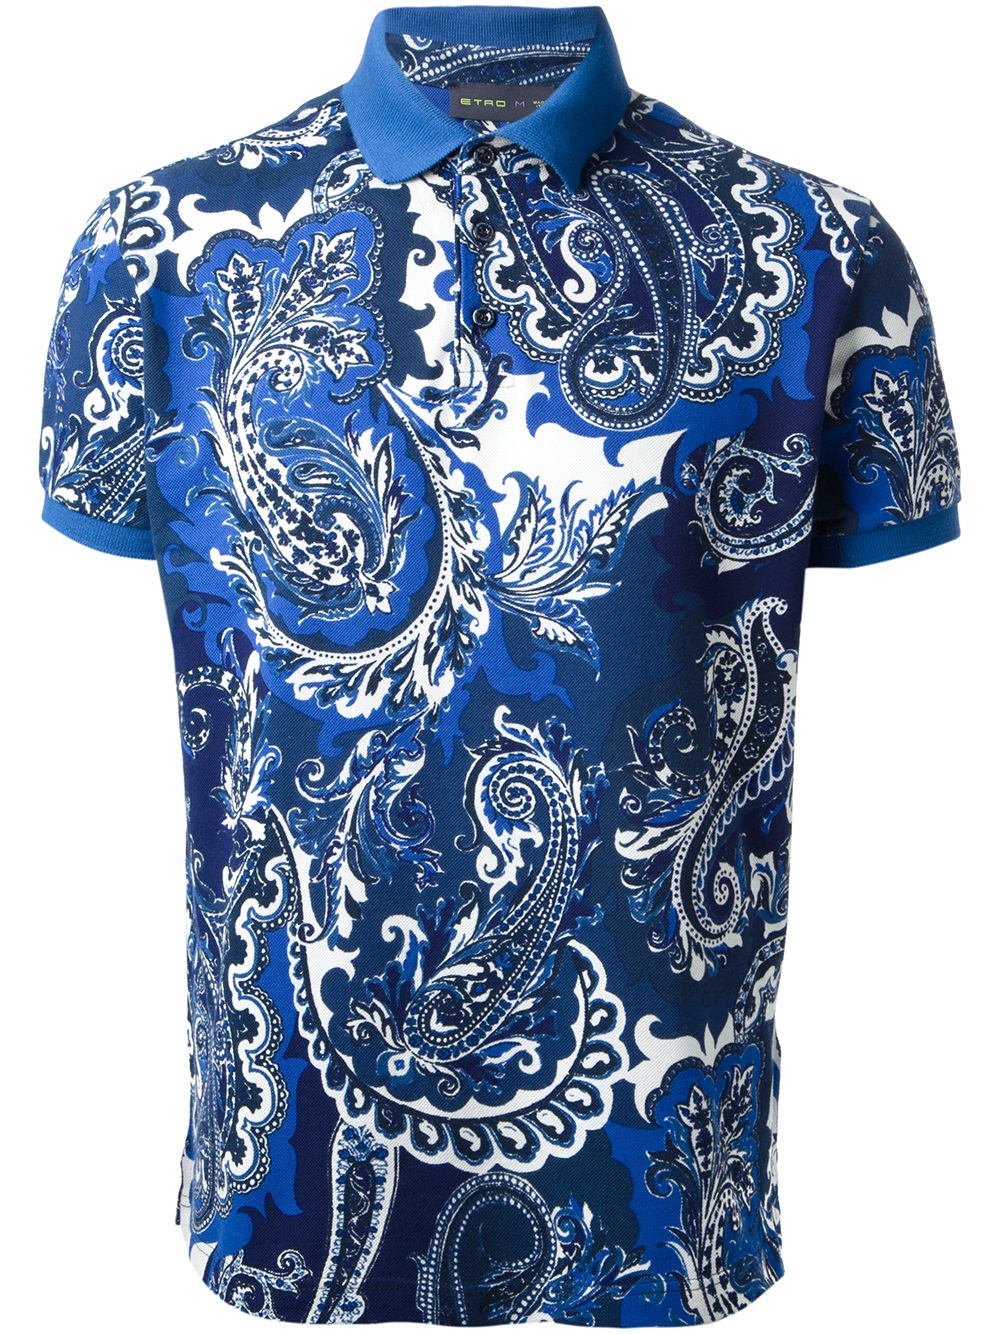 Lyst Etro Paisley Print Polo Shirt In Blue For Men